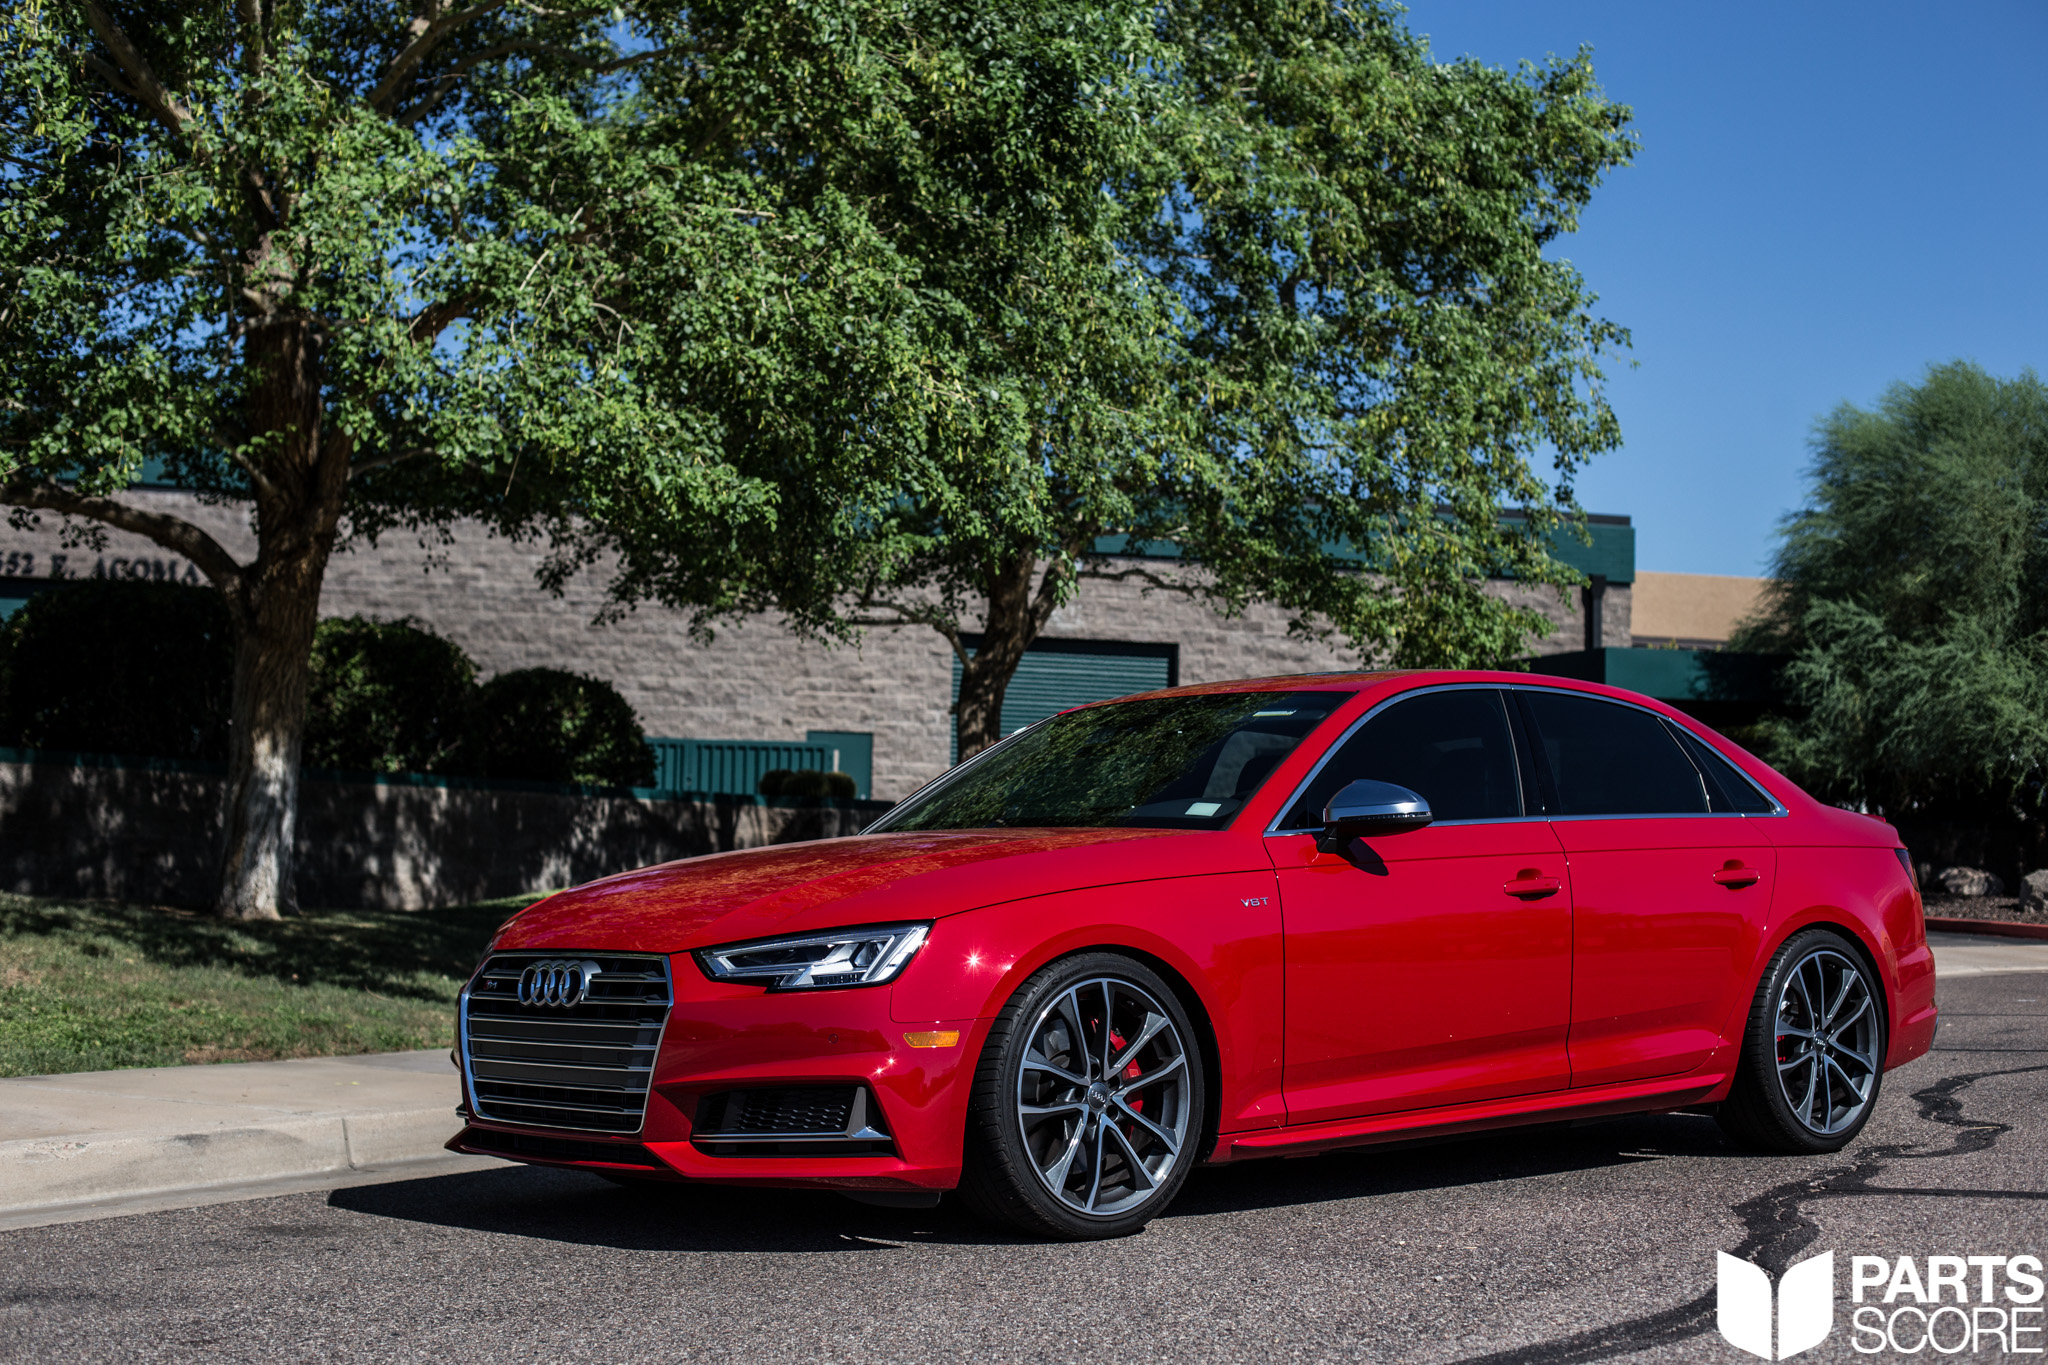 arizona, Audi, audi b9 s4, audi b9 s5, audi has kit, audi performance, audi s4, b9 audi mods, b9 h and r springs, b9 h r coilovers, b9 h&r springs, b9 modifications, b9 performance, b9 s4, b9 s4 034, b9 s4 034 motorsports, b9 s4 apr, b9 s4 awe tuning, b9 s4 carbon fiber, b9 s4 downpipe, b9 s4 exhaust, b9 s4 flash, b9 s4 flash tune, b9 s4 front lip, b9 s4 giac, b9 s4 giac tune, b9 s4 h and r coilovers, b9 s4 h r coilovers, b9 s4 h&r coilovers, b9 s4 h&r springs, b9 s4 has kit, b9 s4 intake, b9 s4 kw coilovers, b9 s4 kw has kit, b9 s4 kwv1, b9 s4 kwv2, b9 s4 kwv3, b9 s4 lip, b9 s4 milltek, b9 s4 modification, b9 s4 mods, b9 s4 navigation, b9 s4 ohlins, b9 s4 ohlins road and track, b9 s4 painted reflectors, b9 s4 performance, b9 s4 performance mods, b9 s4 power, b9 s4 spacers, b9 s4 spoiler, b9 s4 springs, b9 s4 tune, b9 s5, b9 s5 apr, b9 s5 awe tuning, b9 s5 carbon fiber, b9 s5 downpipe, b9 s5 exhaust, b9 s5 front lip, b9 s5 giac, b9 s5 h&r springs, b9 s5 has kit, b9 s5 intake, b9 s5 kw has kit, b9 s5 milltek, b9 s5 mods, b9 s5 painted reflectors, b9 s5 performance, b9 s5 power, b9 s5 springs, giac flash, giac tune, giactuned, glacier white, h and r coilovers b9, has kit, height adjustable spring kit, kw coilovers b9, magma red, parts score, s4 b9 cts turbo, scottsdale